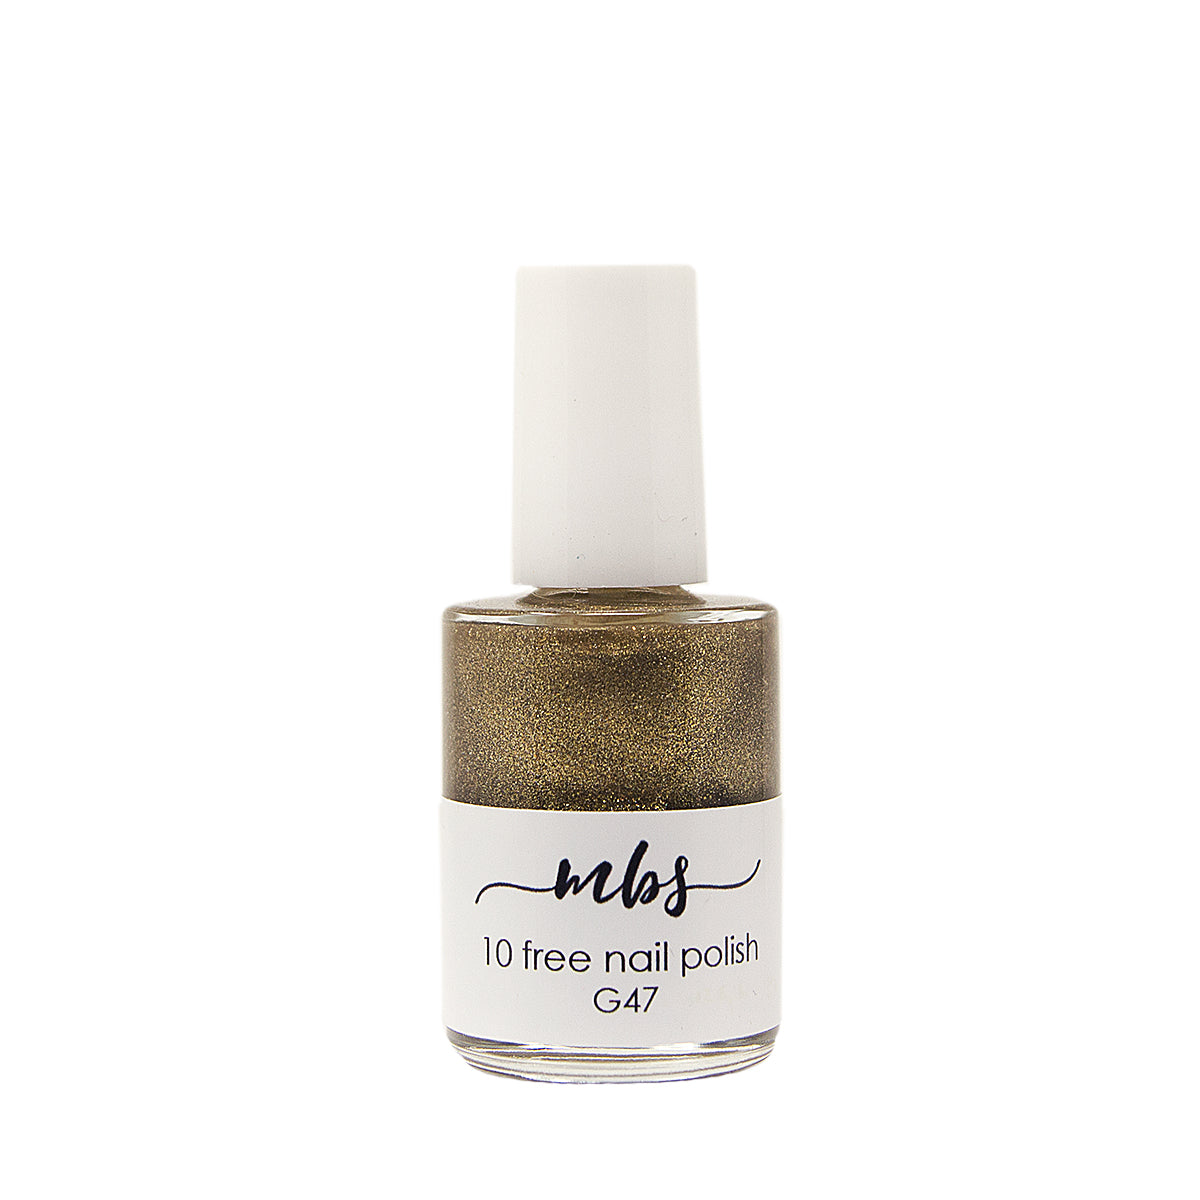 Nail Polish G47-Nail Polish-Morning Blossom Studio